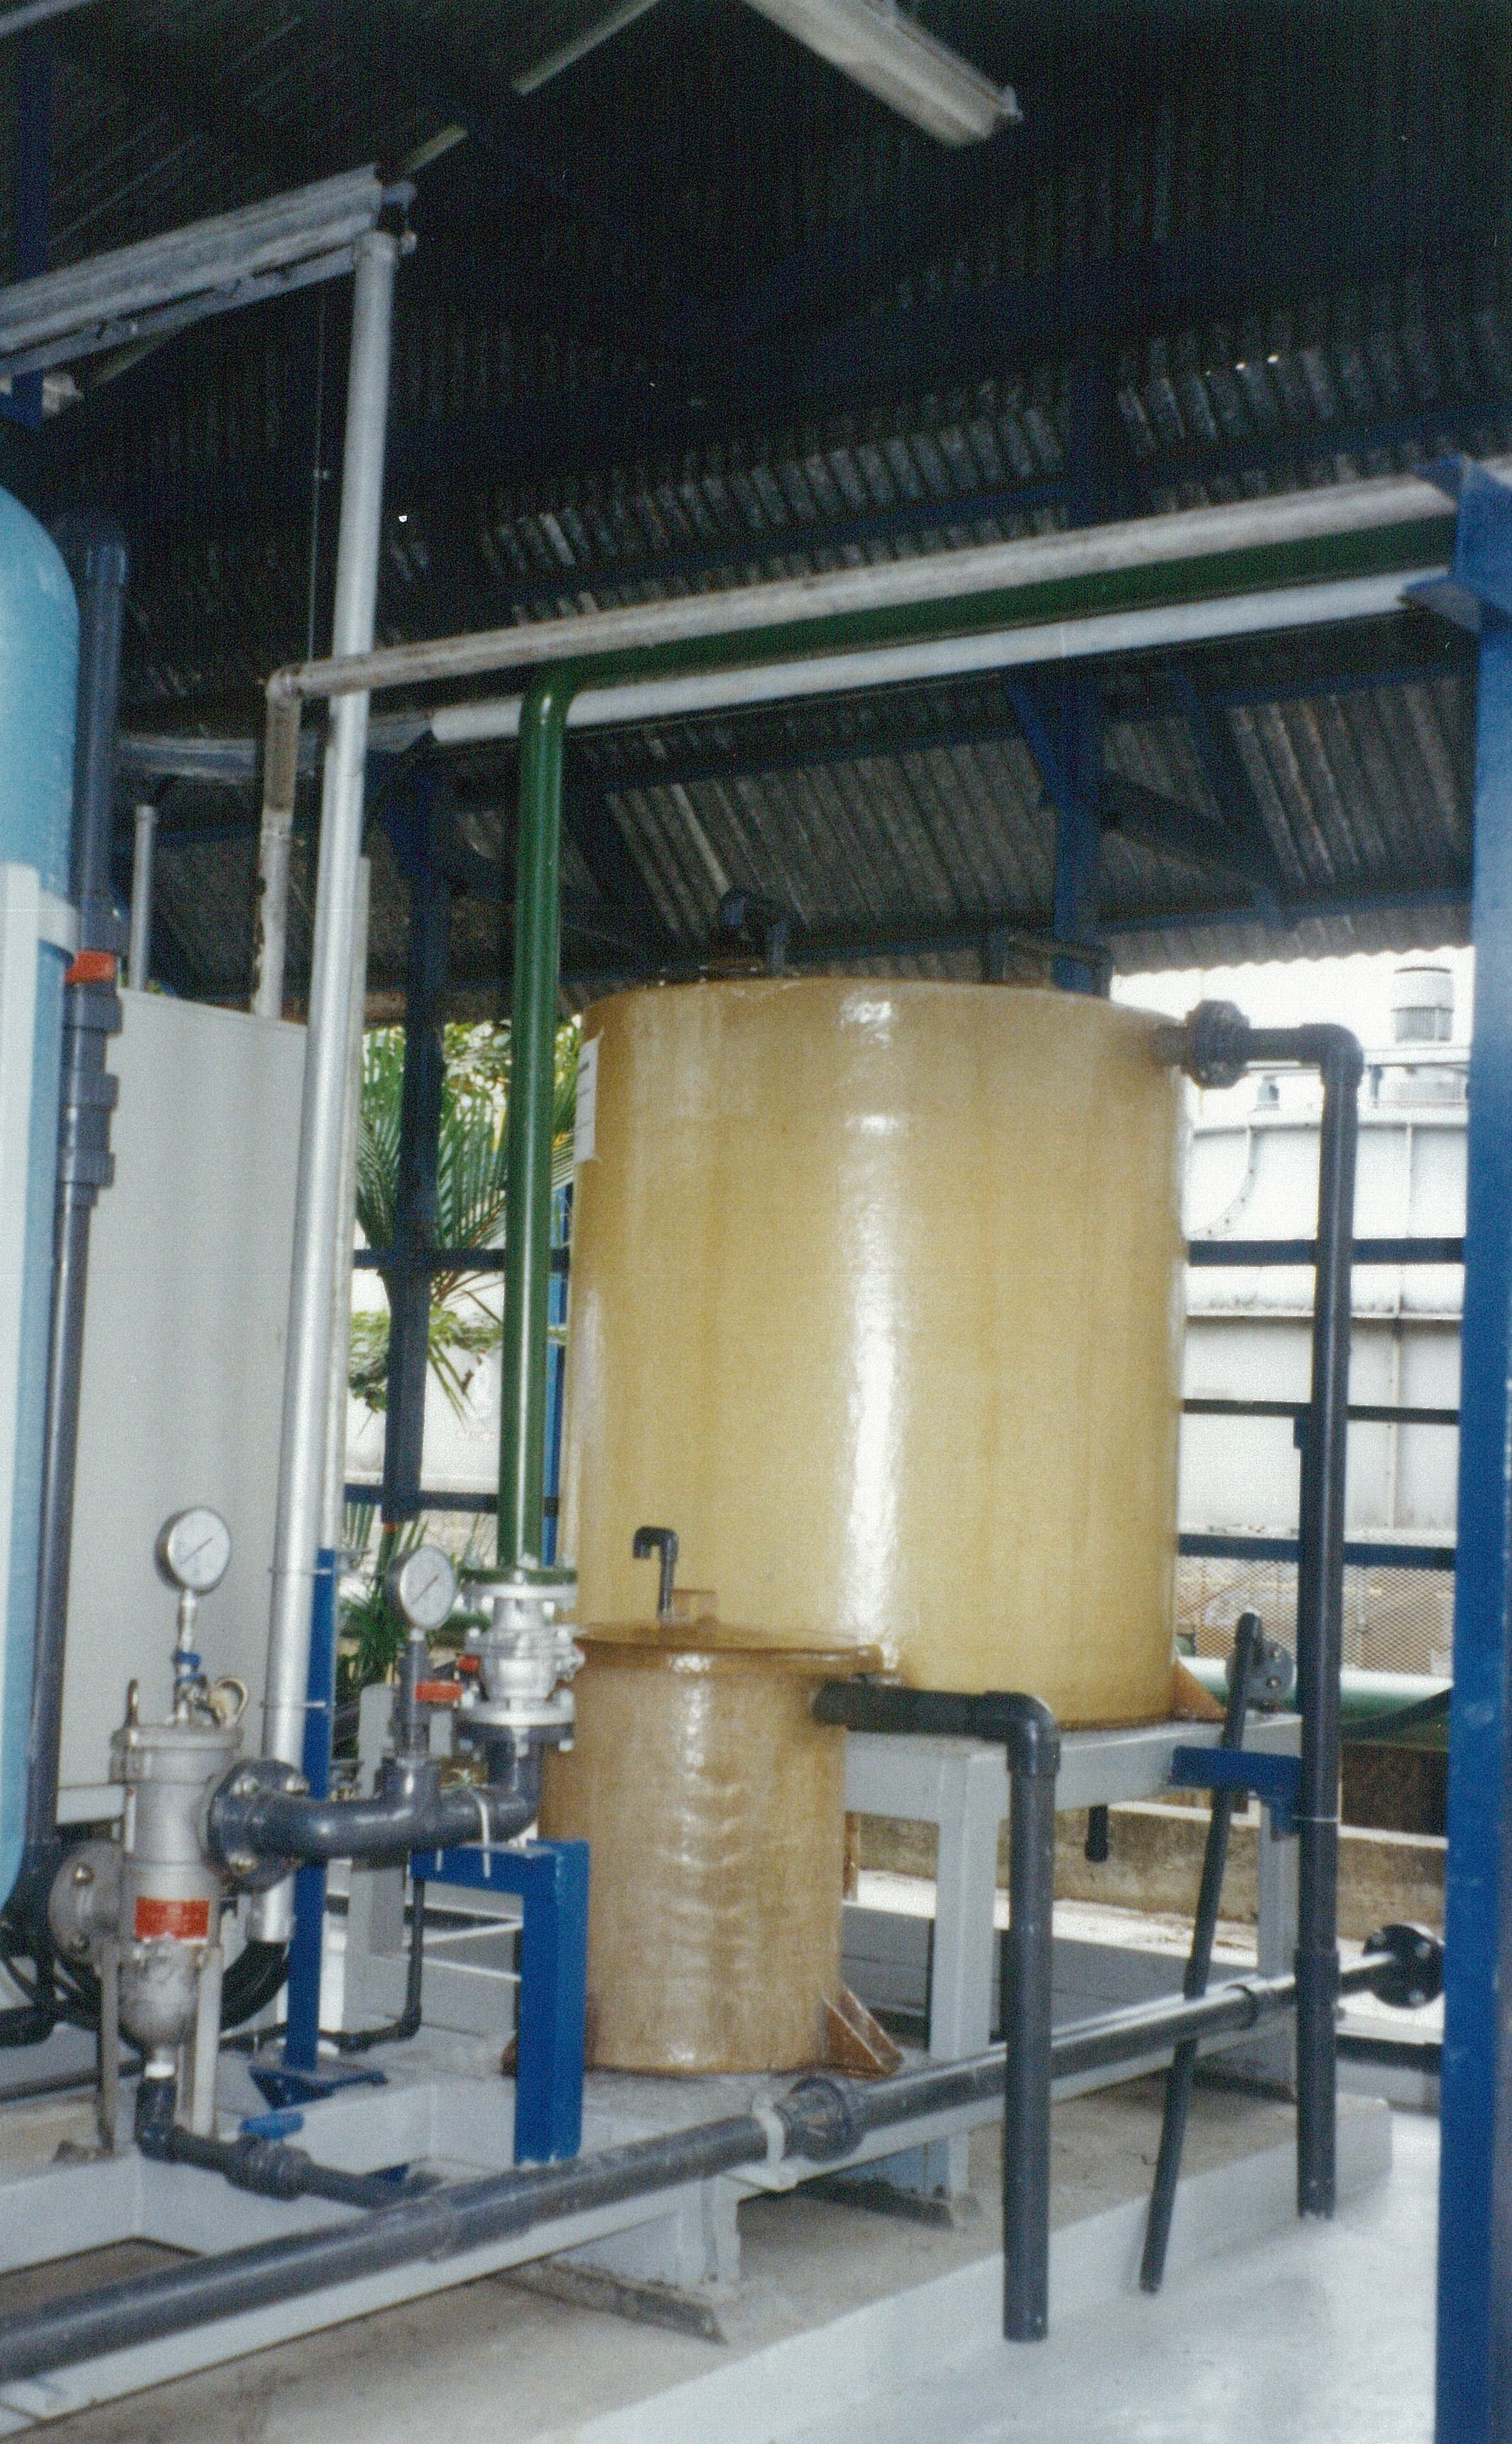 ME Tech distilled water system resin plant on skid for transport